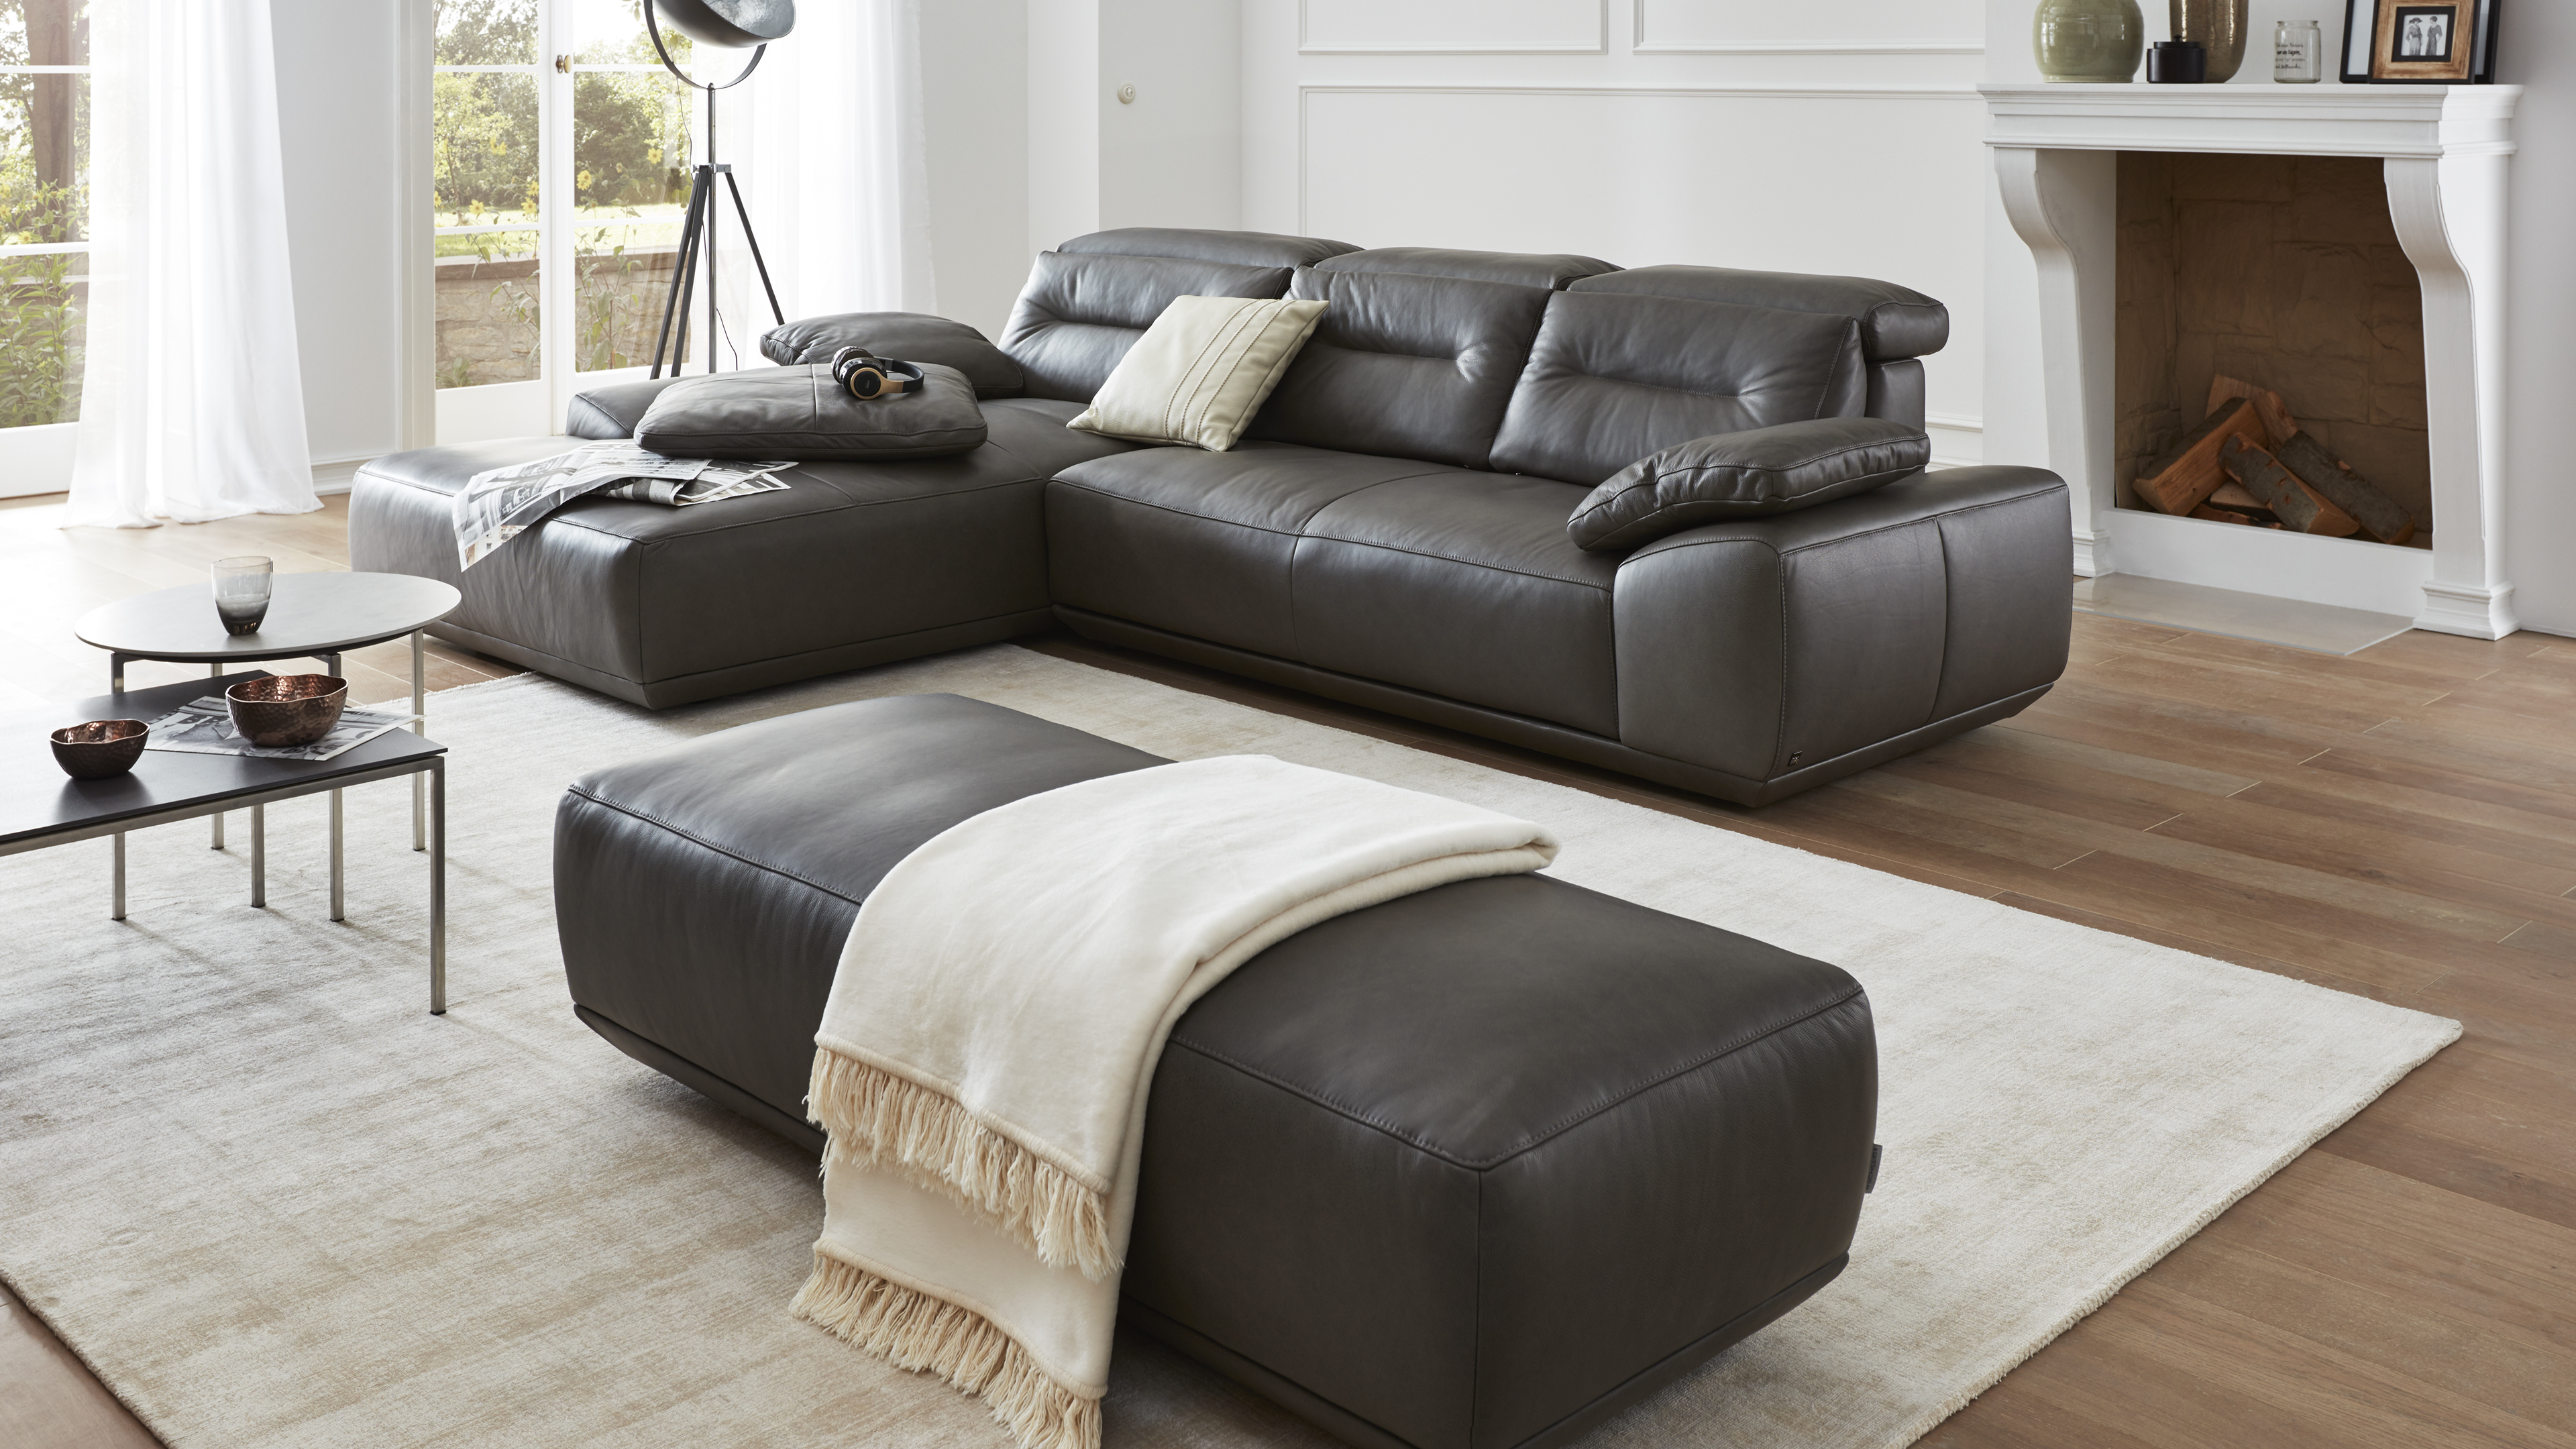 interliving sofa serie 4000 m bel fischer. Black Bedroom Furniture Sets. Home Design Ideas